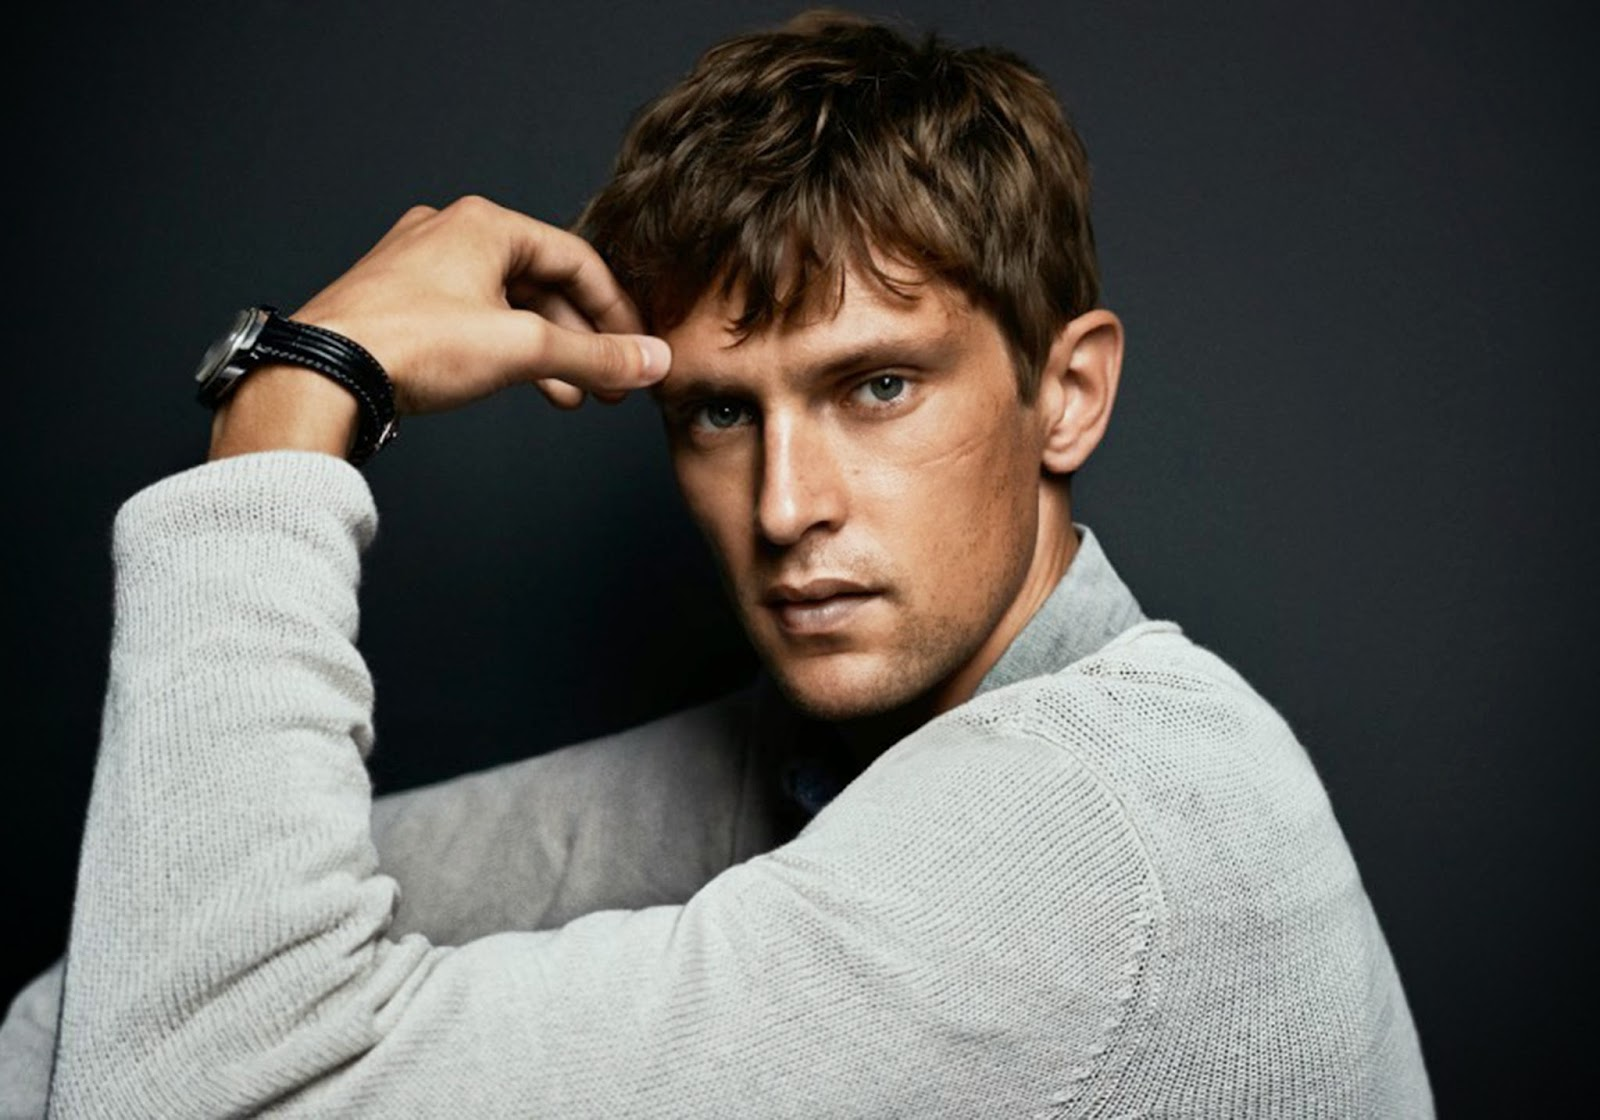 Mathias Lauridsen Models Easy Contemporary Styles for Jack & Jones